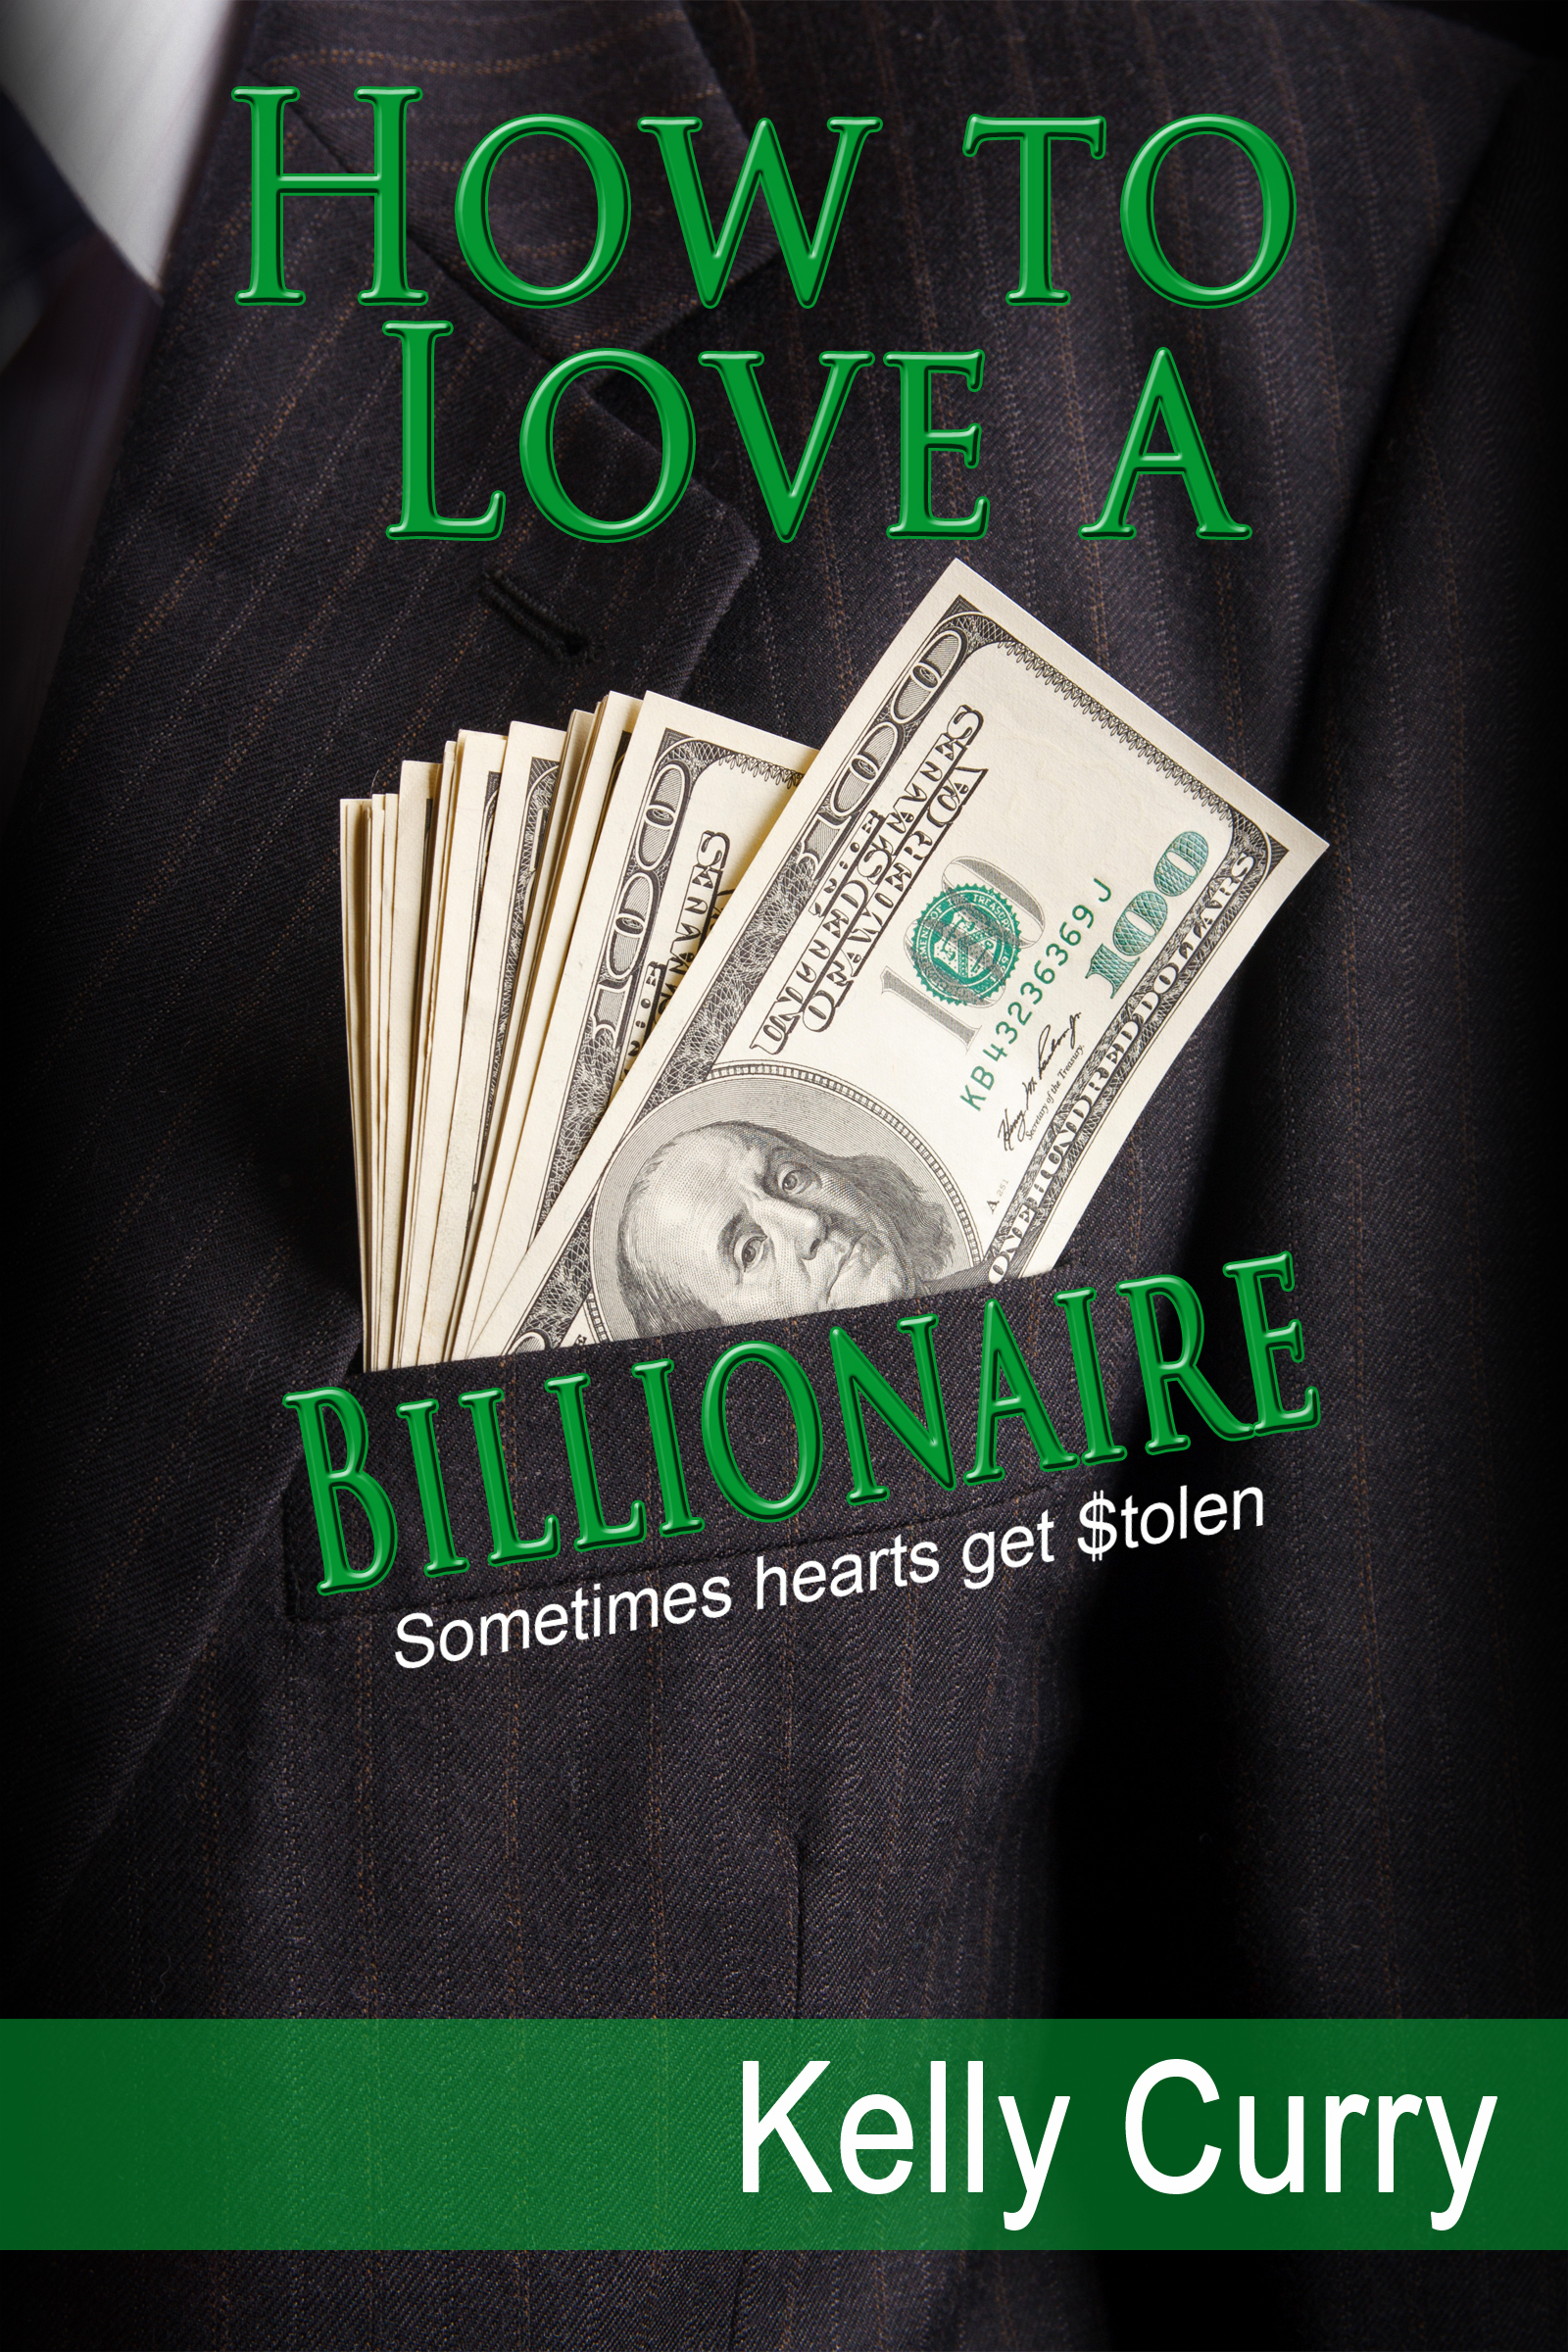 Kelly Curry - How to Love a Billionaire